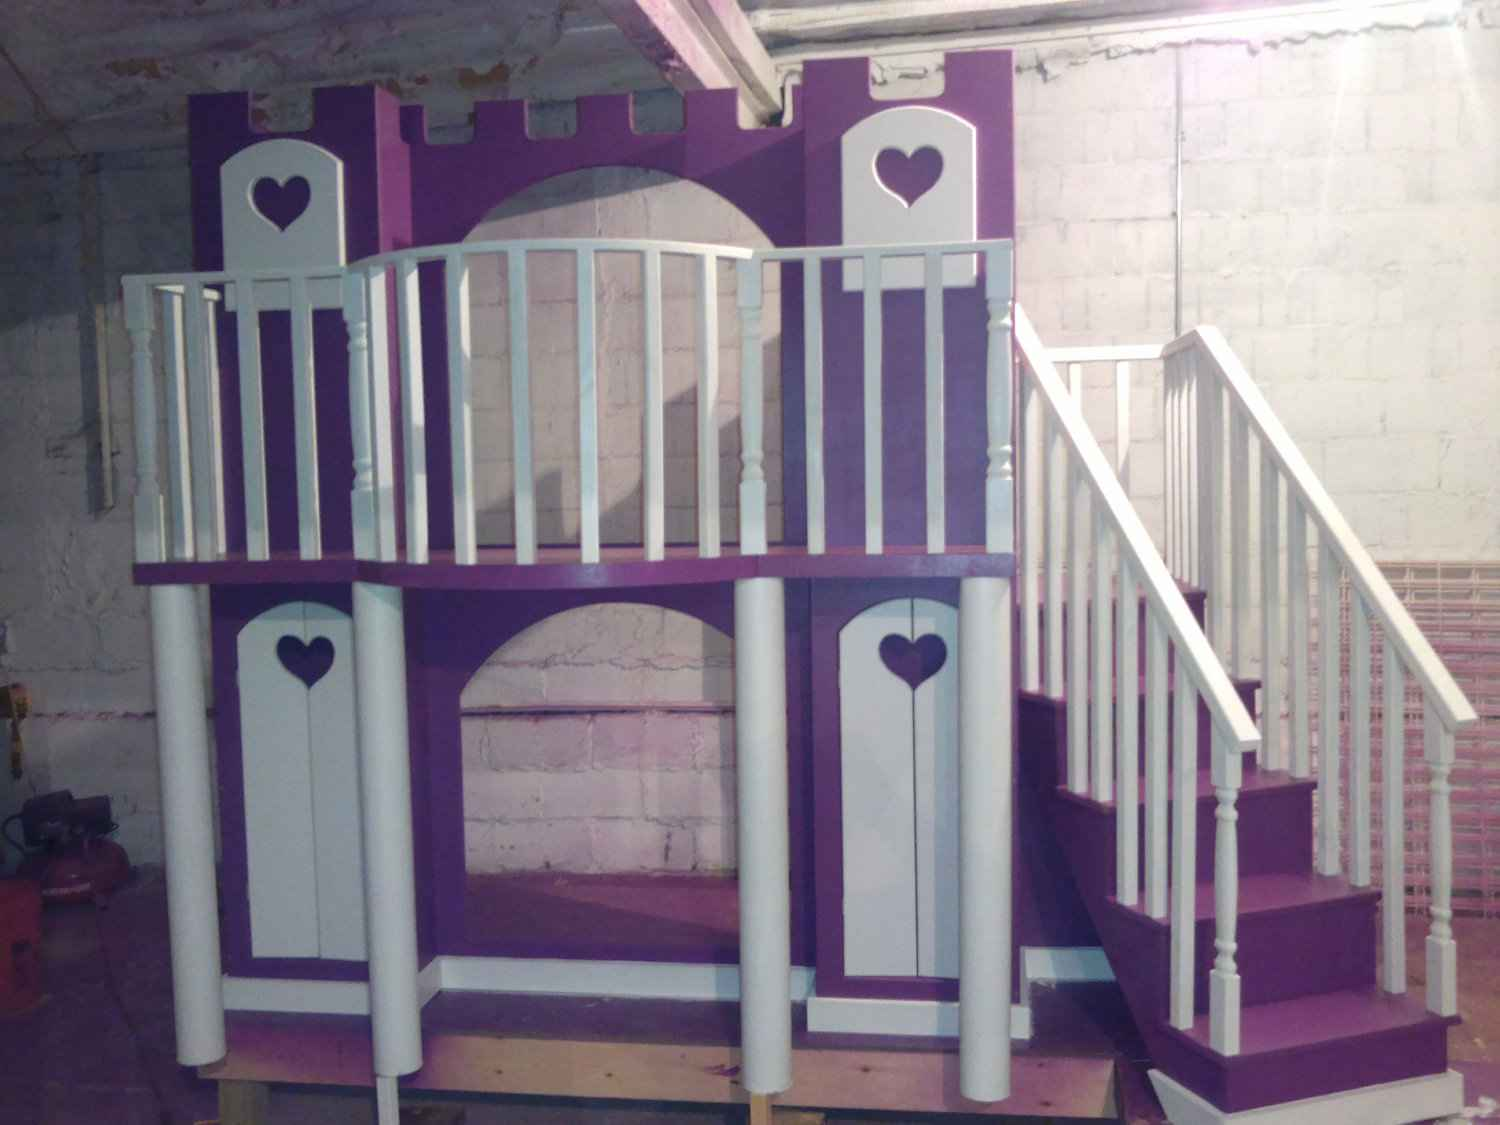 Delightful Loft Beds For teens with violet castle theme and stairs